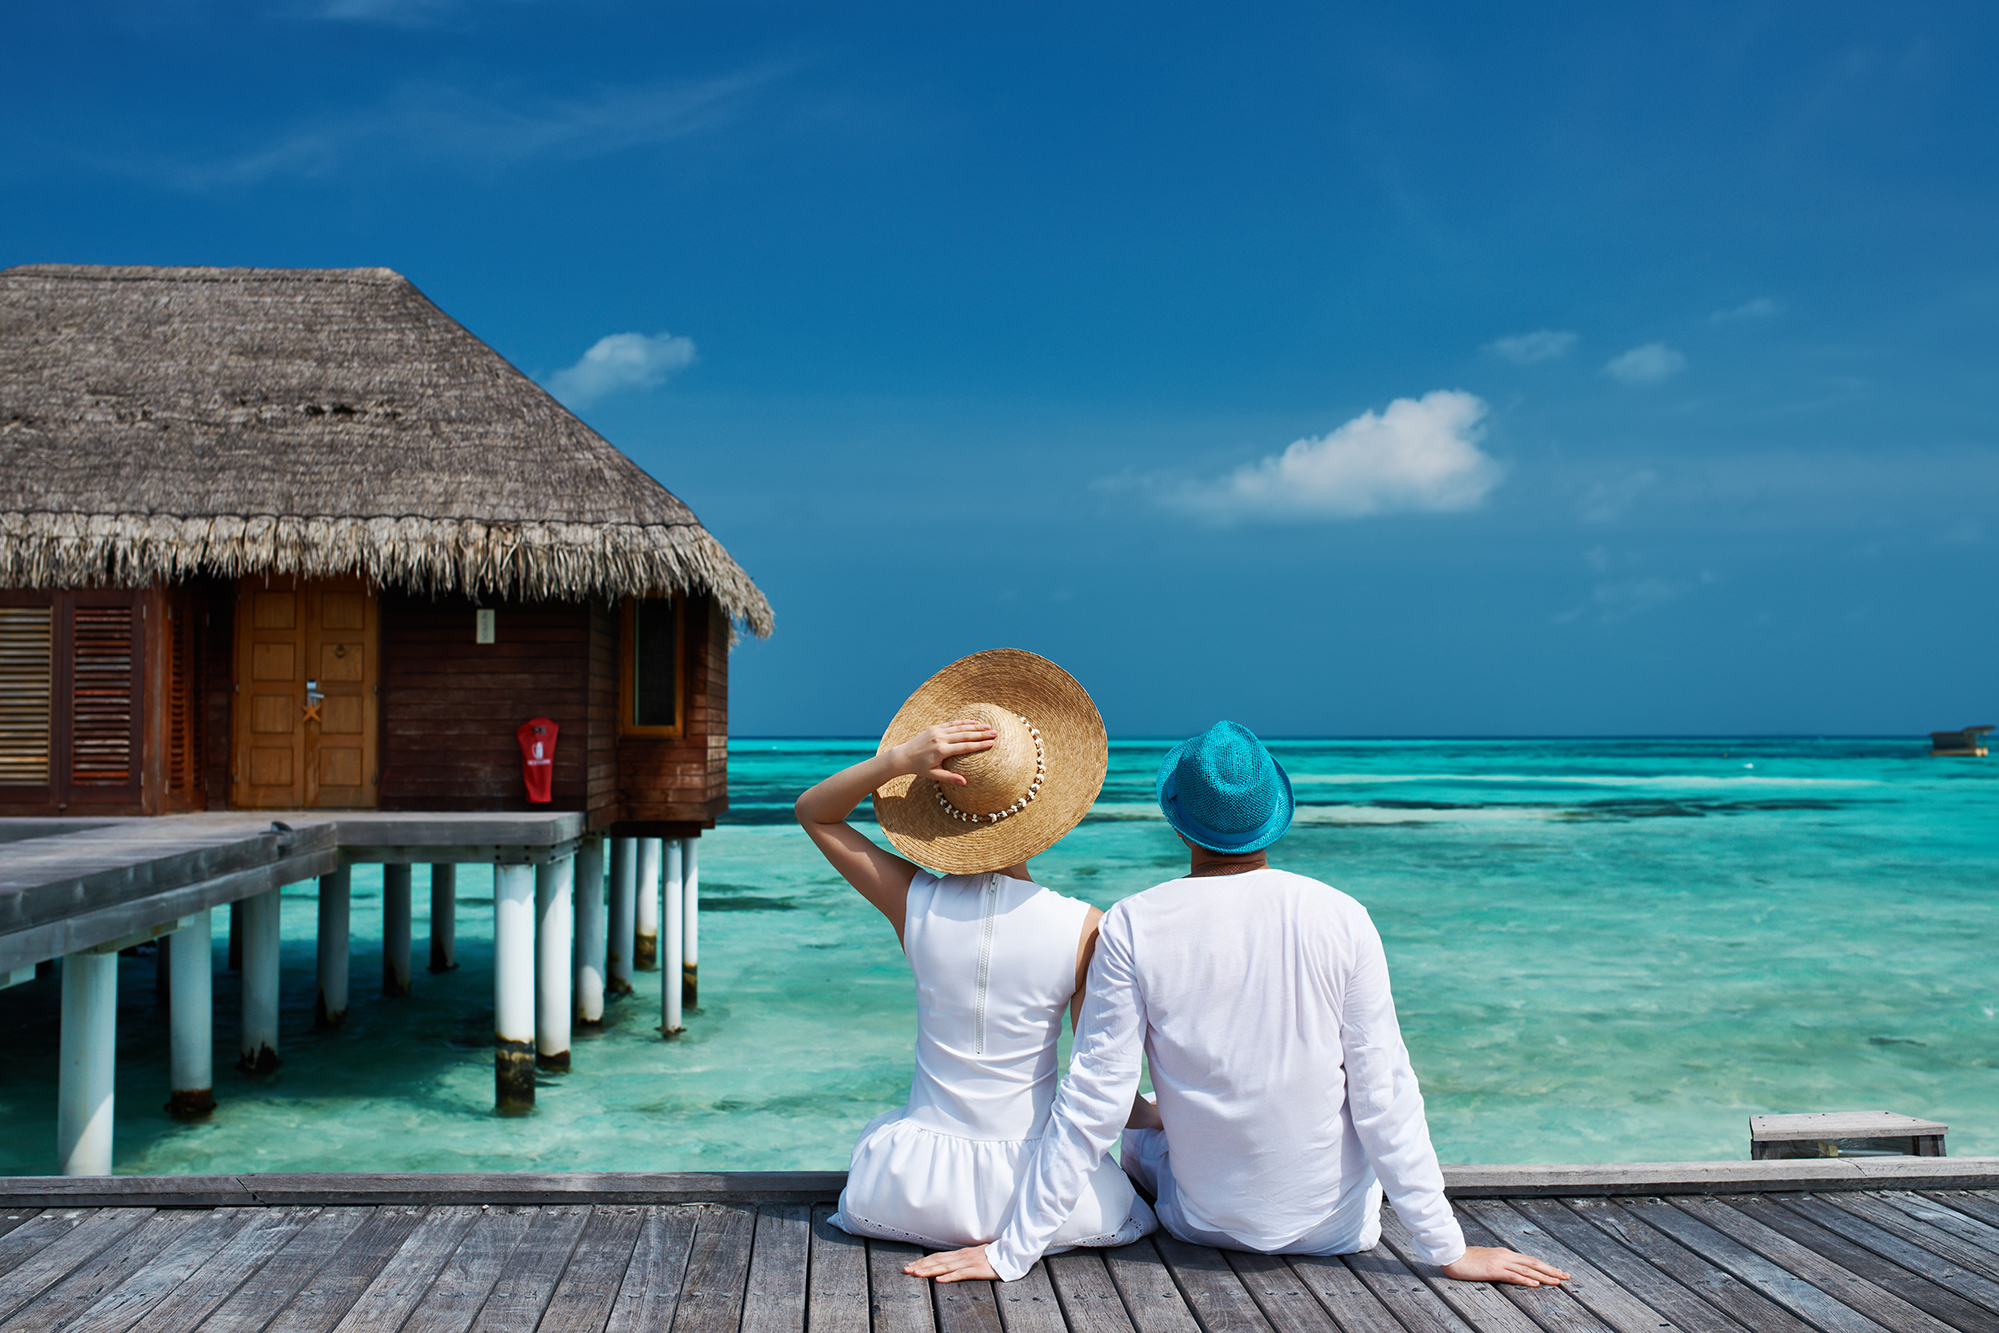 A man and a woman sitting on a pier next to a straw hut, looking out onto a beautiful blue ocean in from of them underneath a bright blue sky. This is an image we used in the campaign